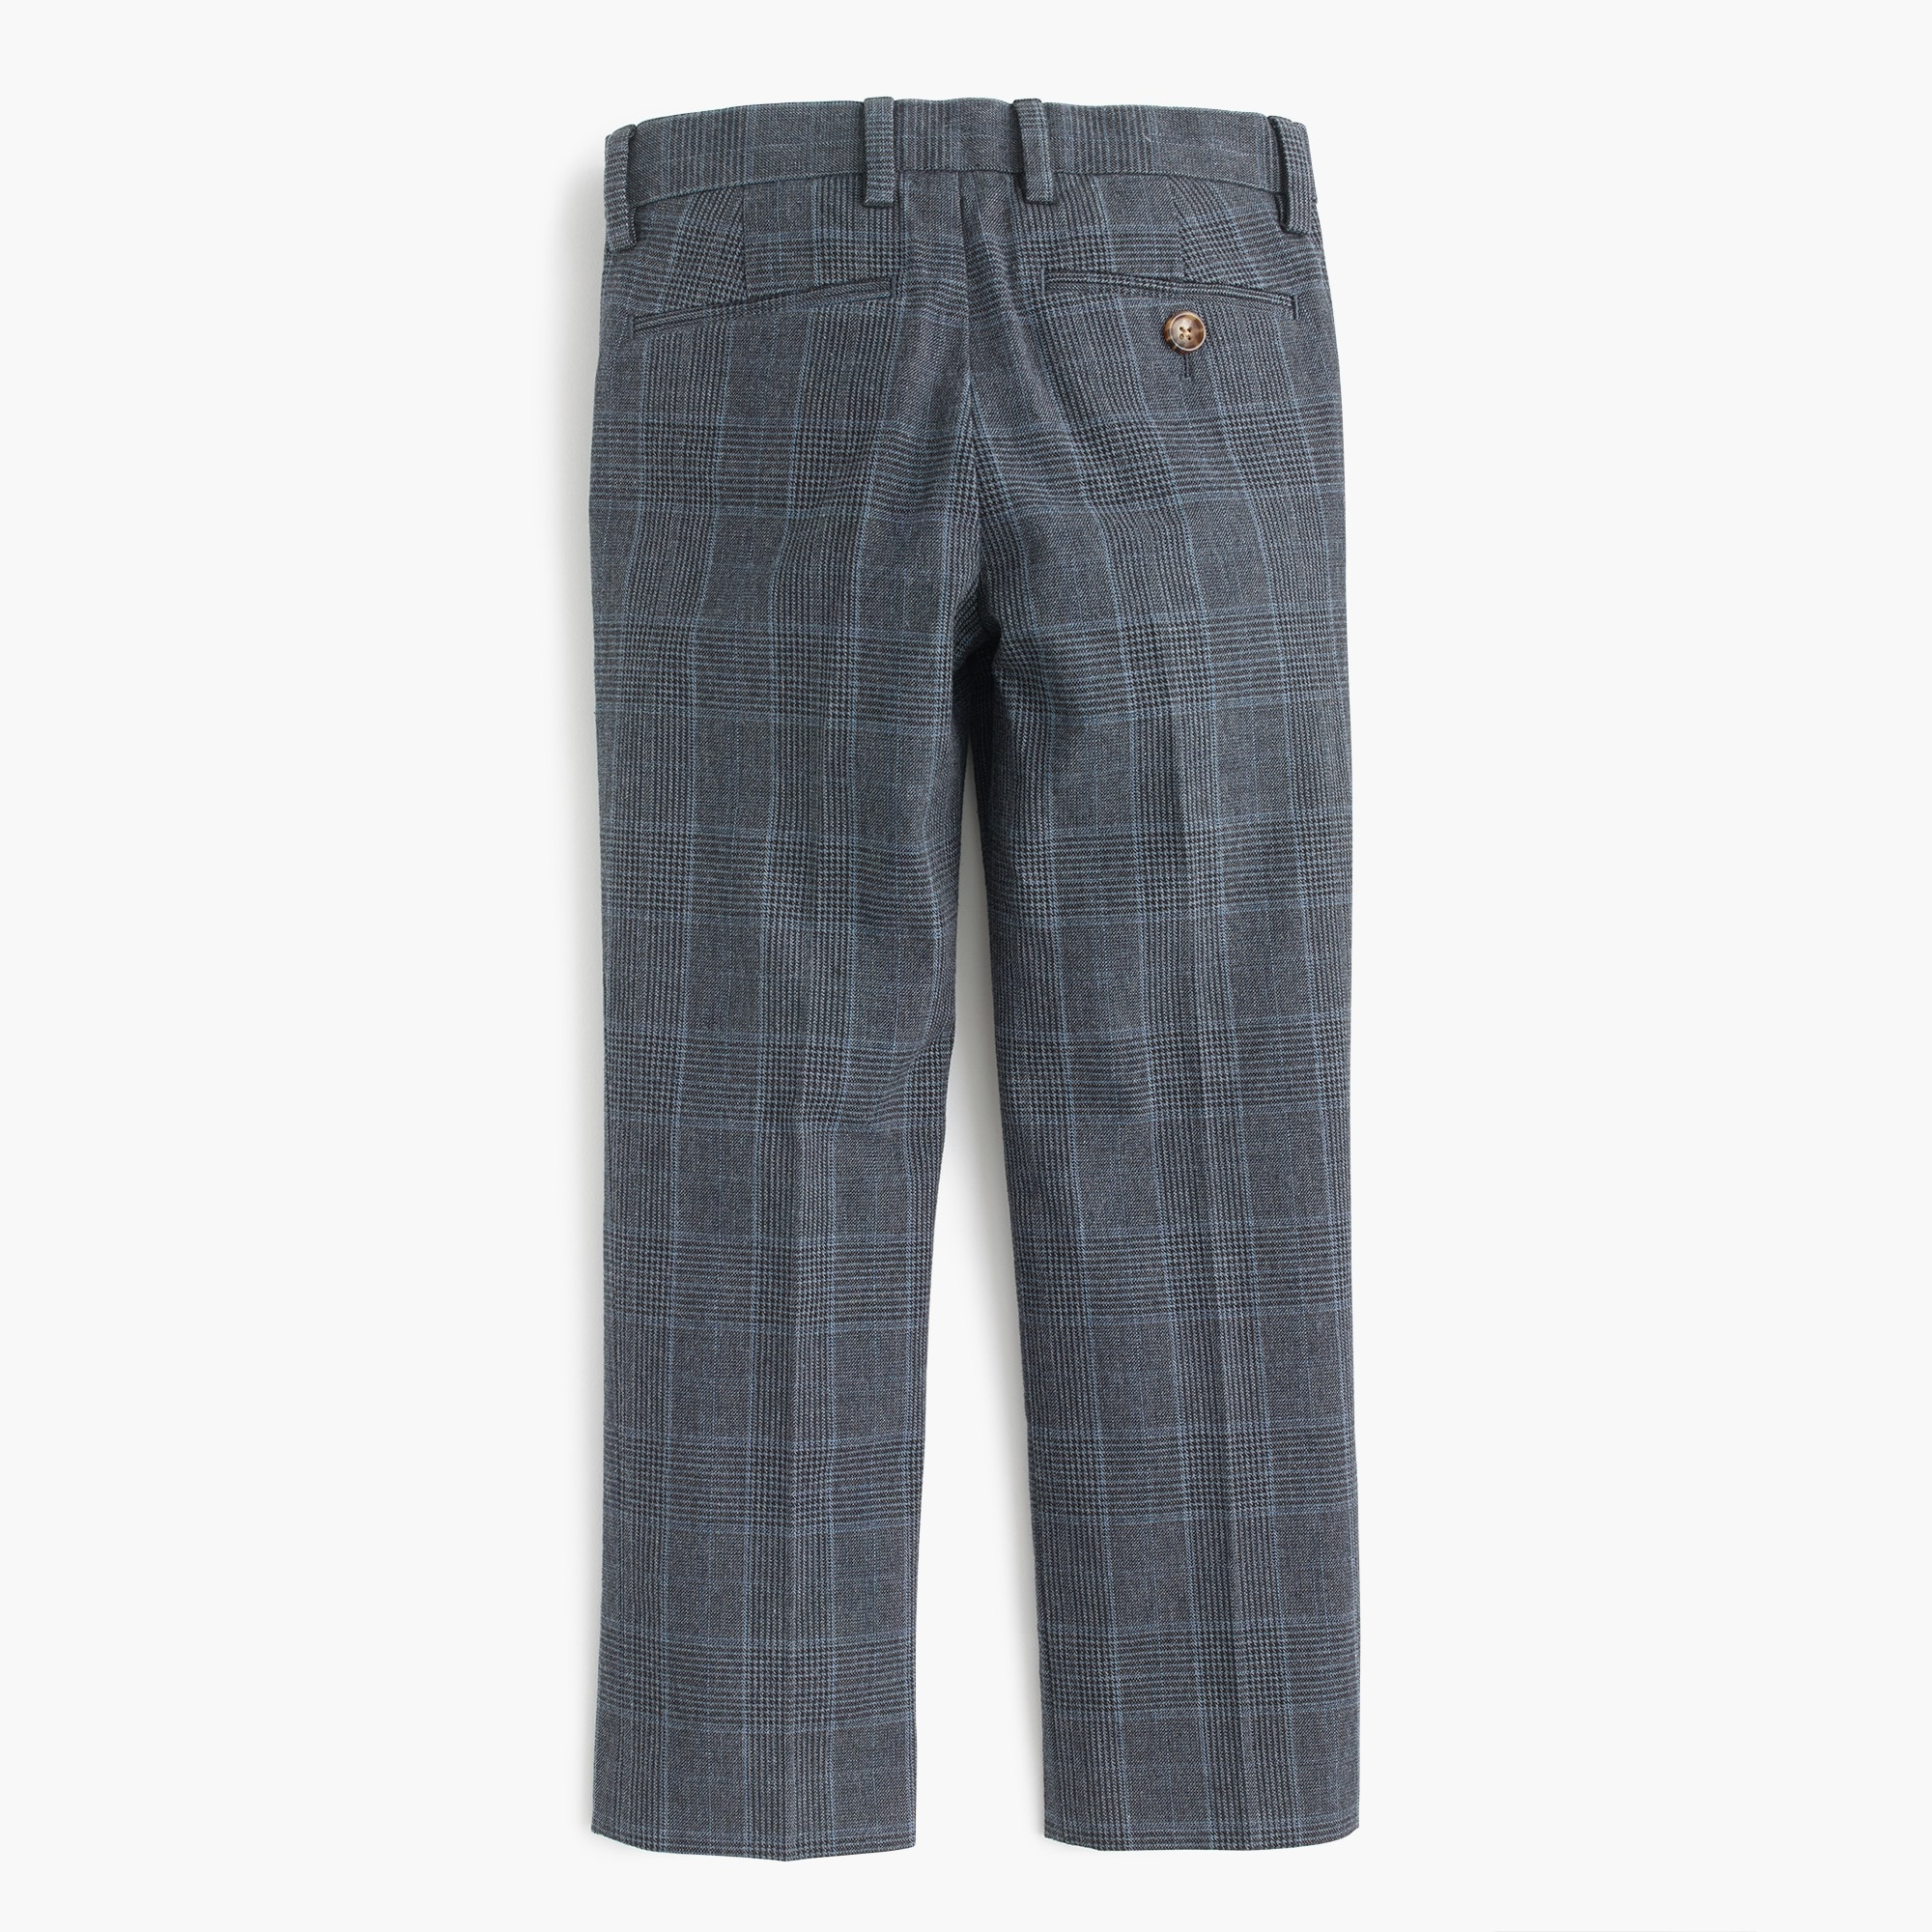 Image 2 for Boys' trousers in glen plaid